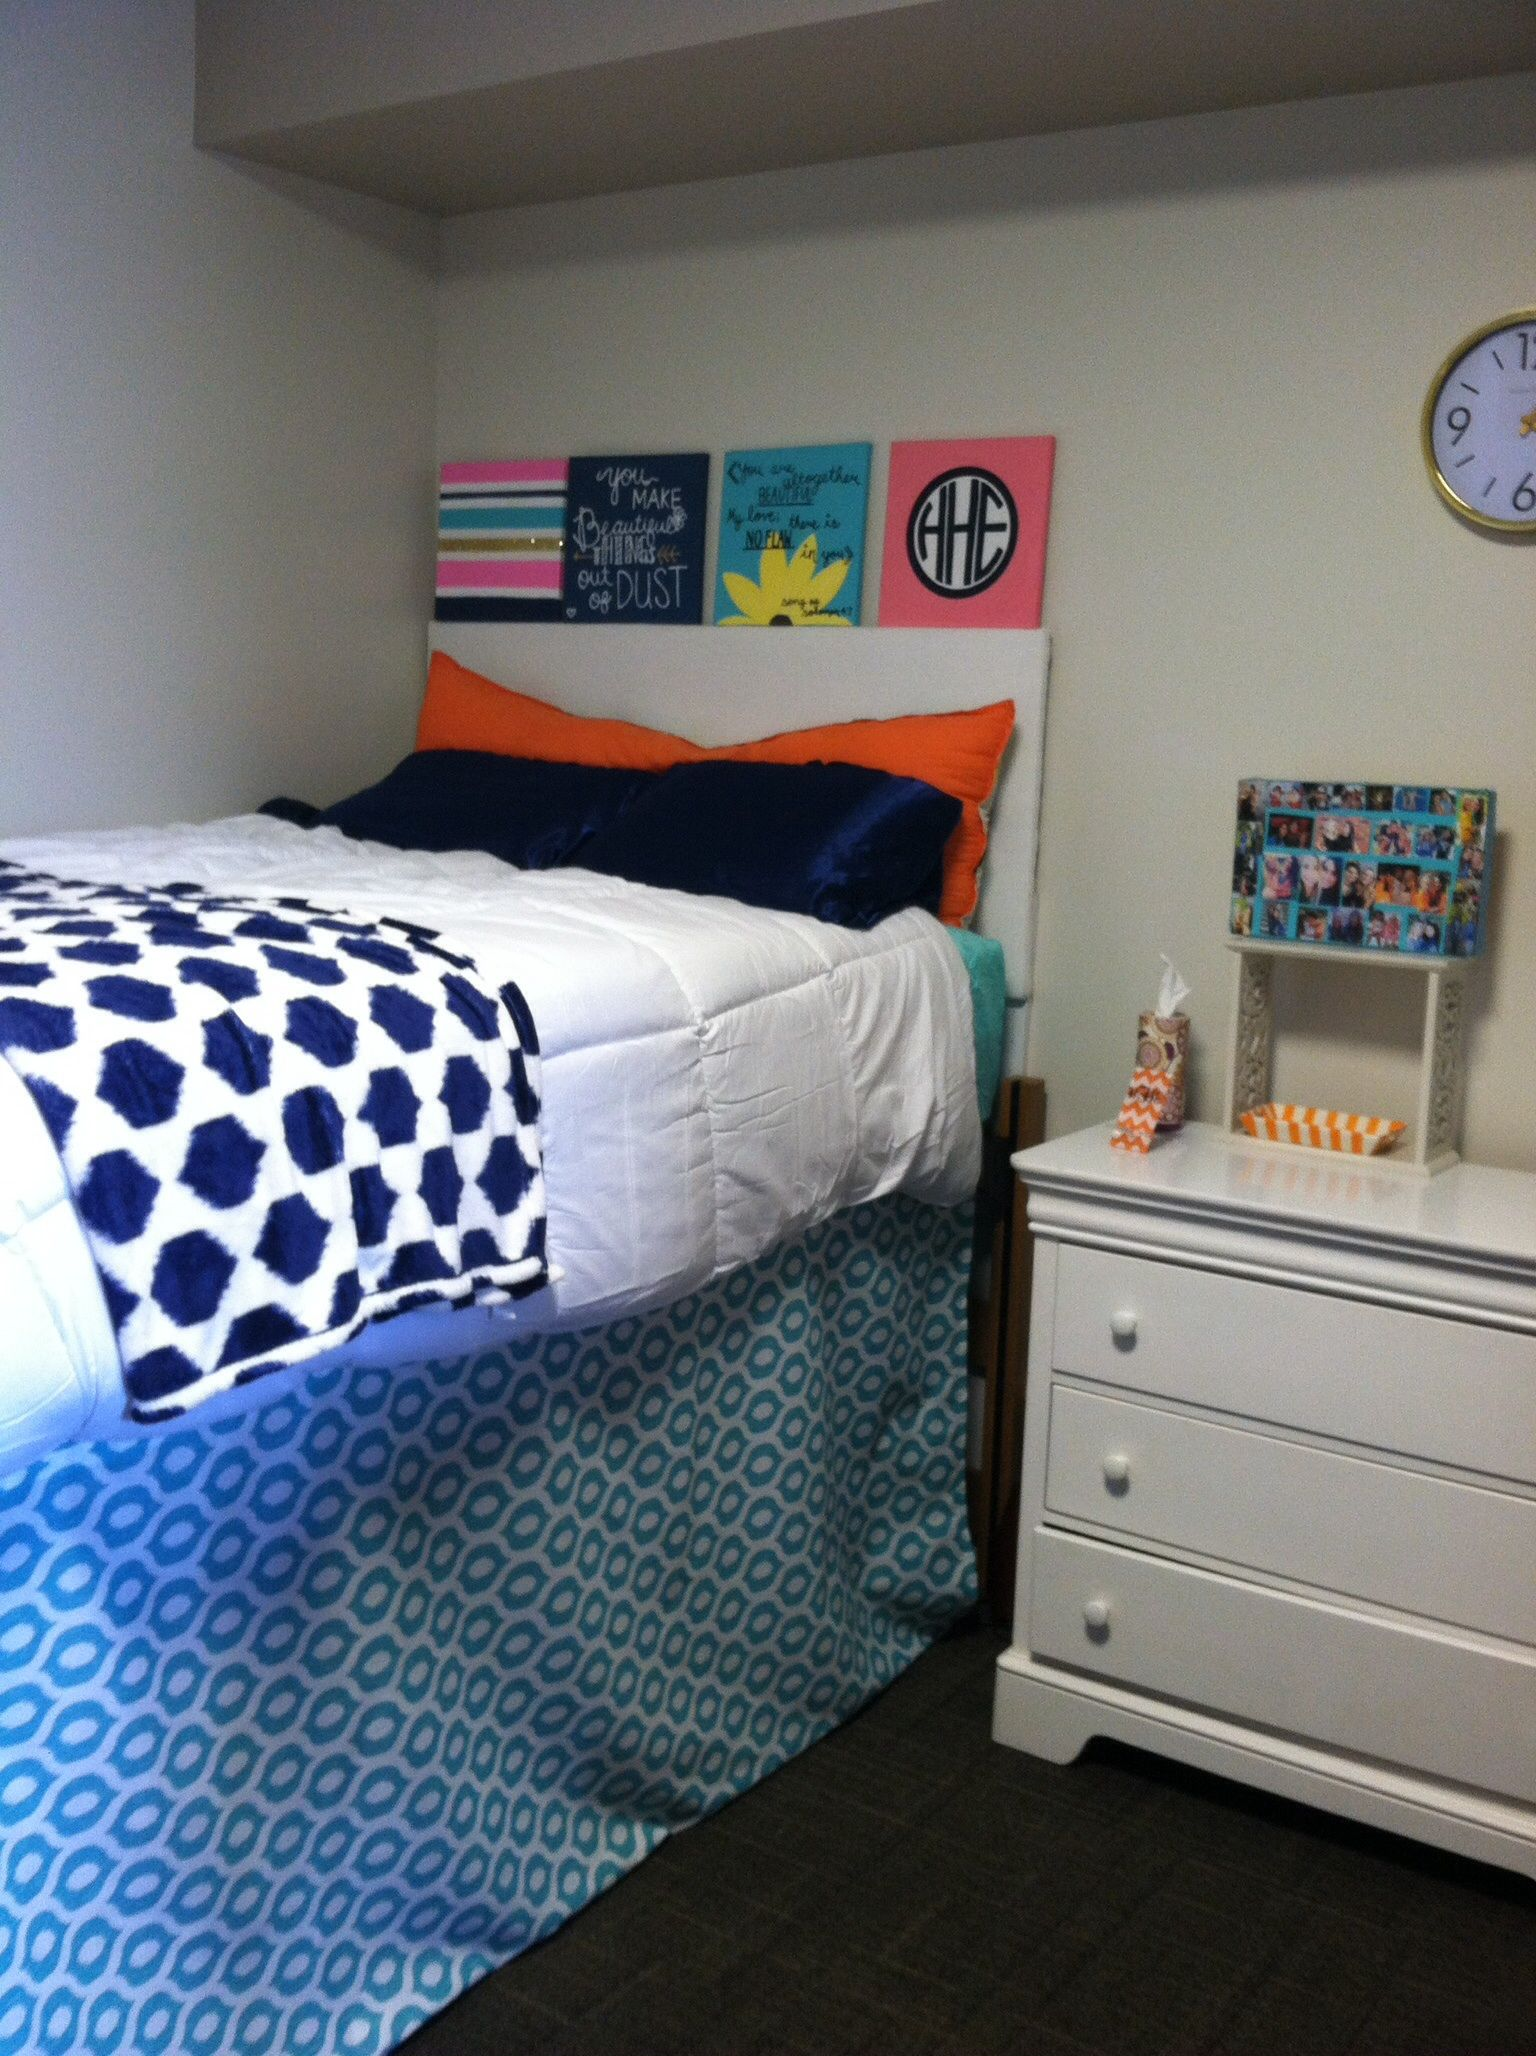 Moving Day (With images) | Dorm sweet dorm, Toddler bed, Bed